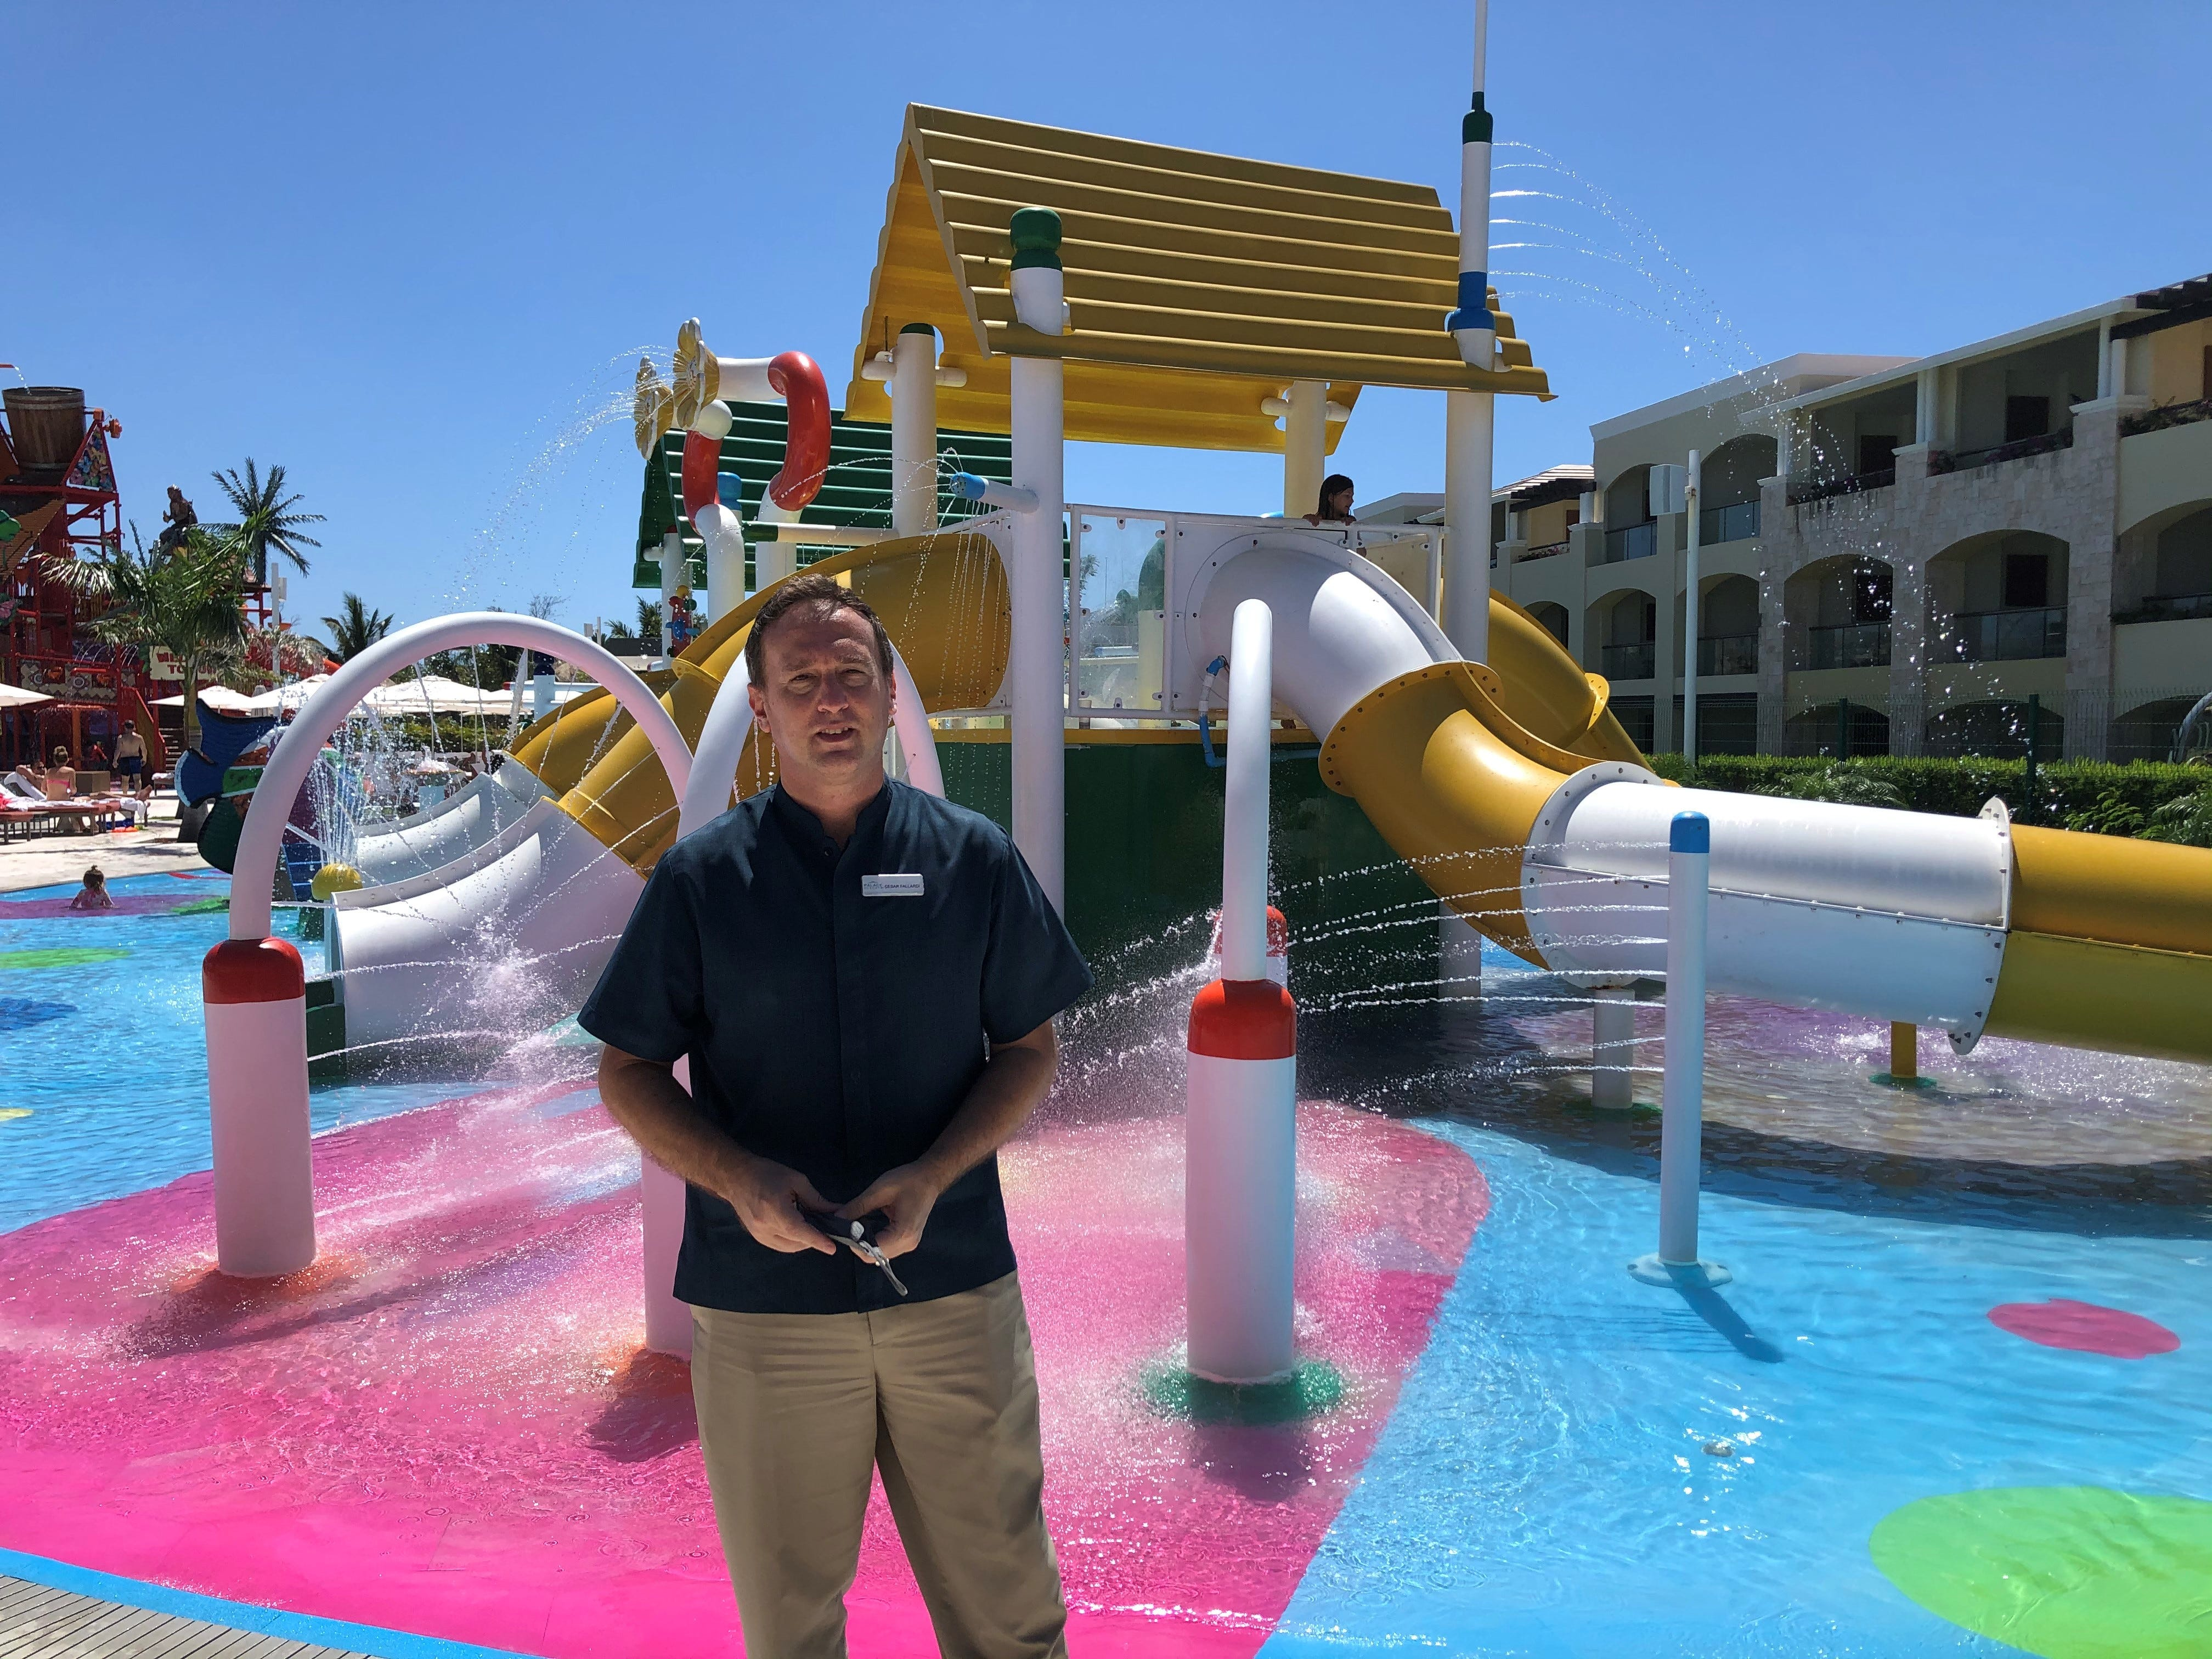 Cesar Fallardi, director of operations at The Grand at Moon Palace resort in Cancun, Mexico, which includes a water park, says bookings in late February surpassed pre-pandemic levels as travel resumes.